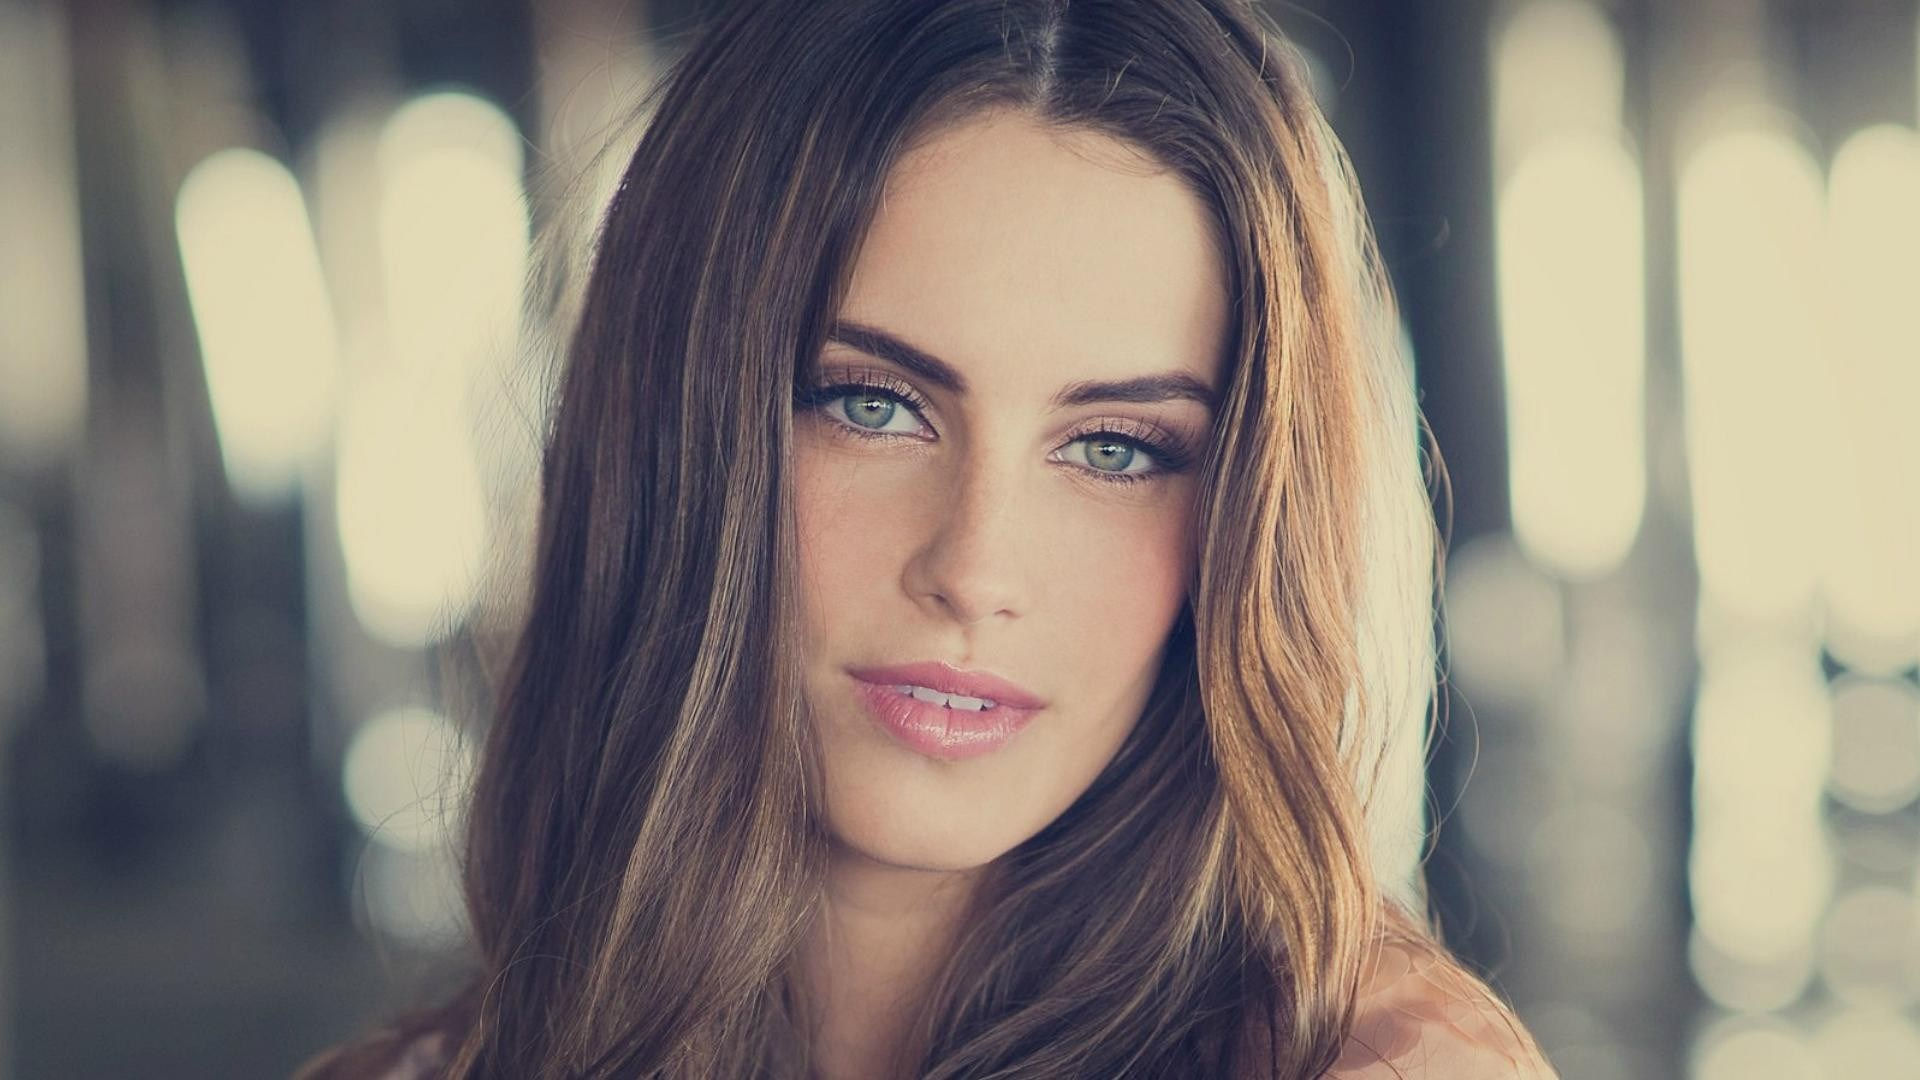 1920x1080 - Jessica Lowndes Wallpapers 14